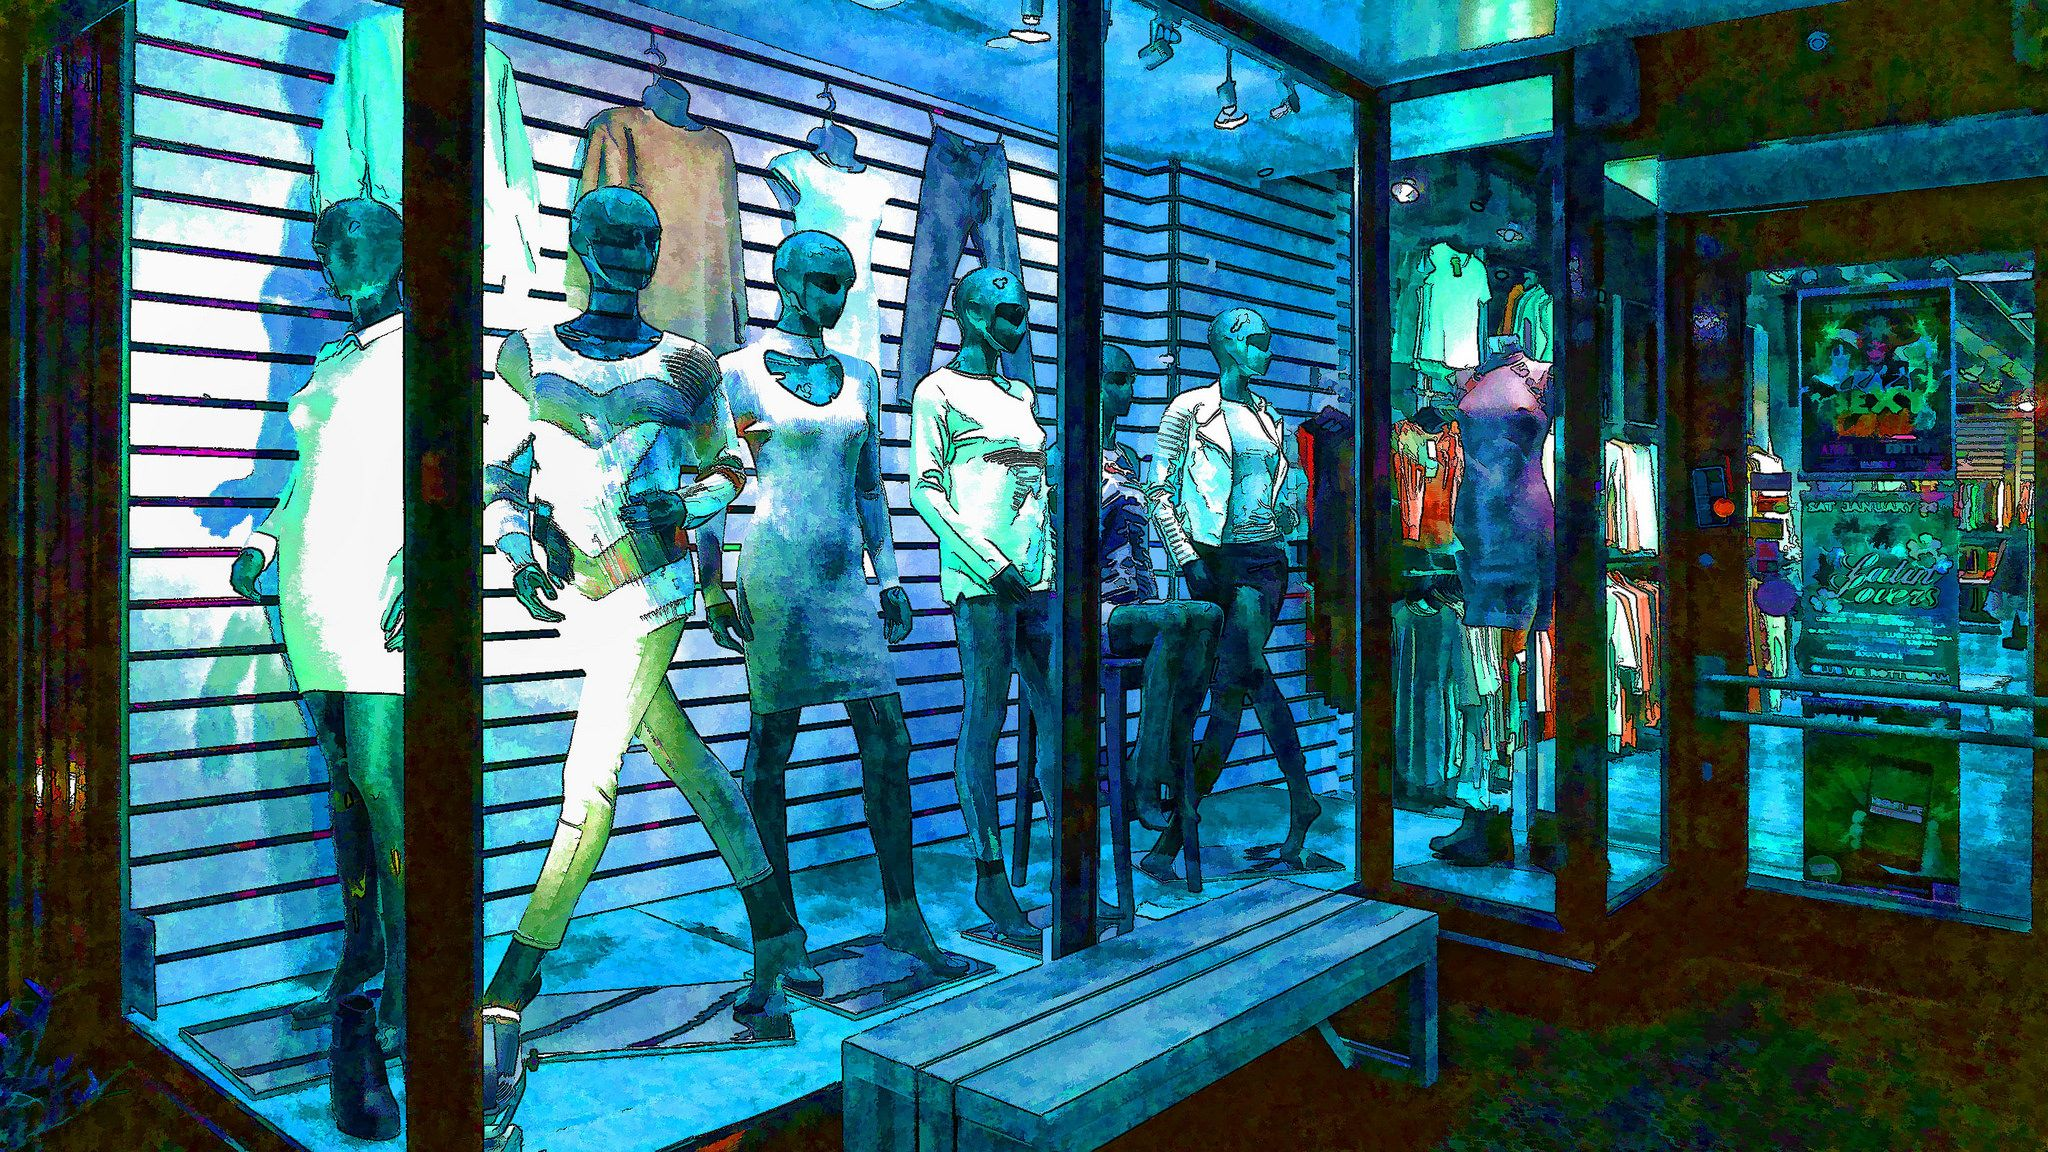 https://flic.kr/p/RUDC6F | window mannequins | captured in Den Haag